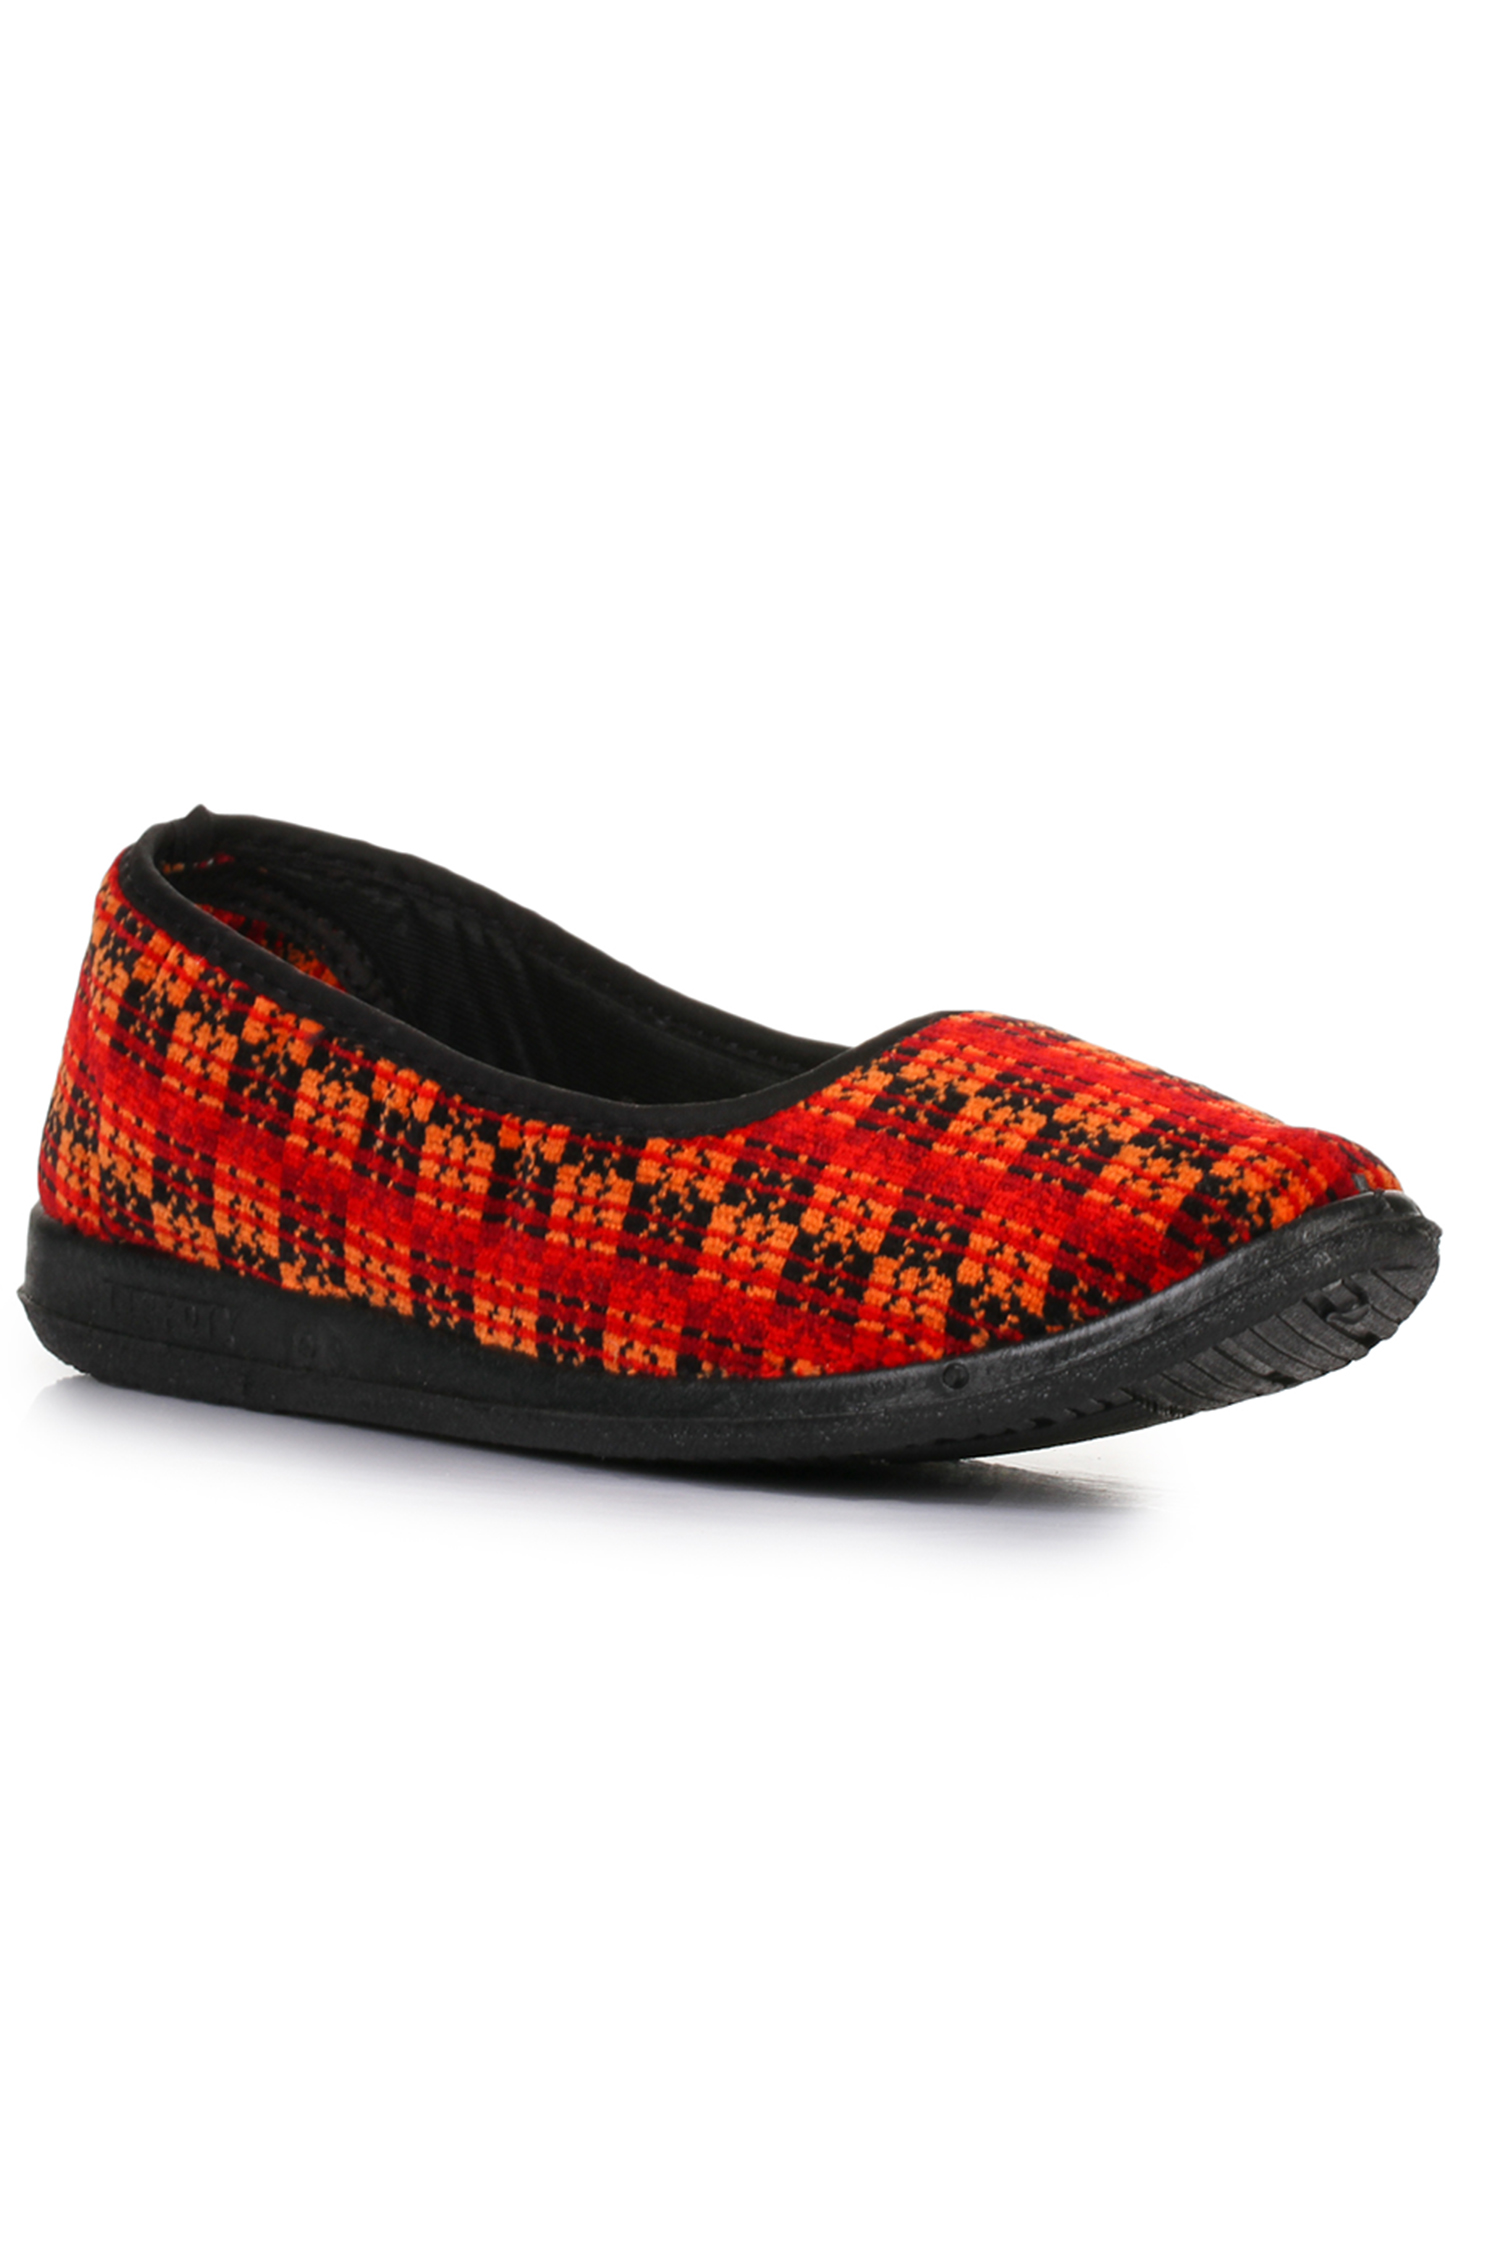 Liberty | Liberty GLIDERS Ballerinas SP-BLY-103_RED For - Women